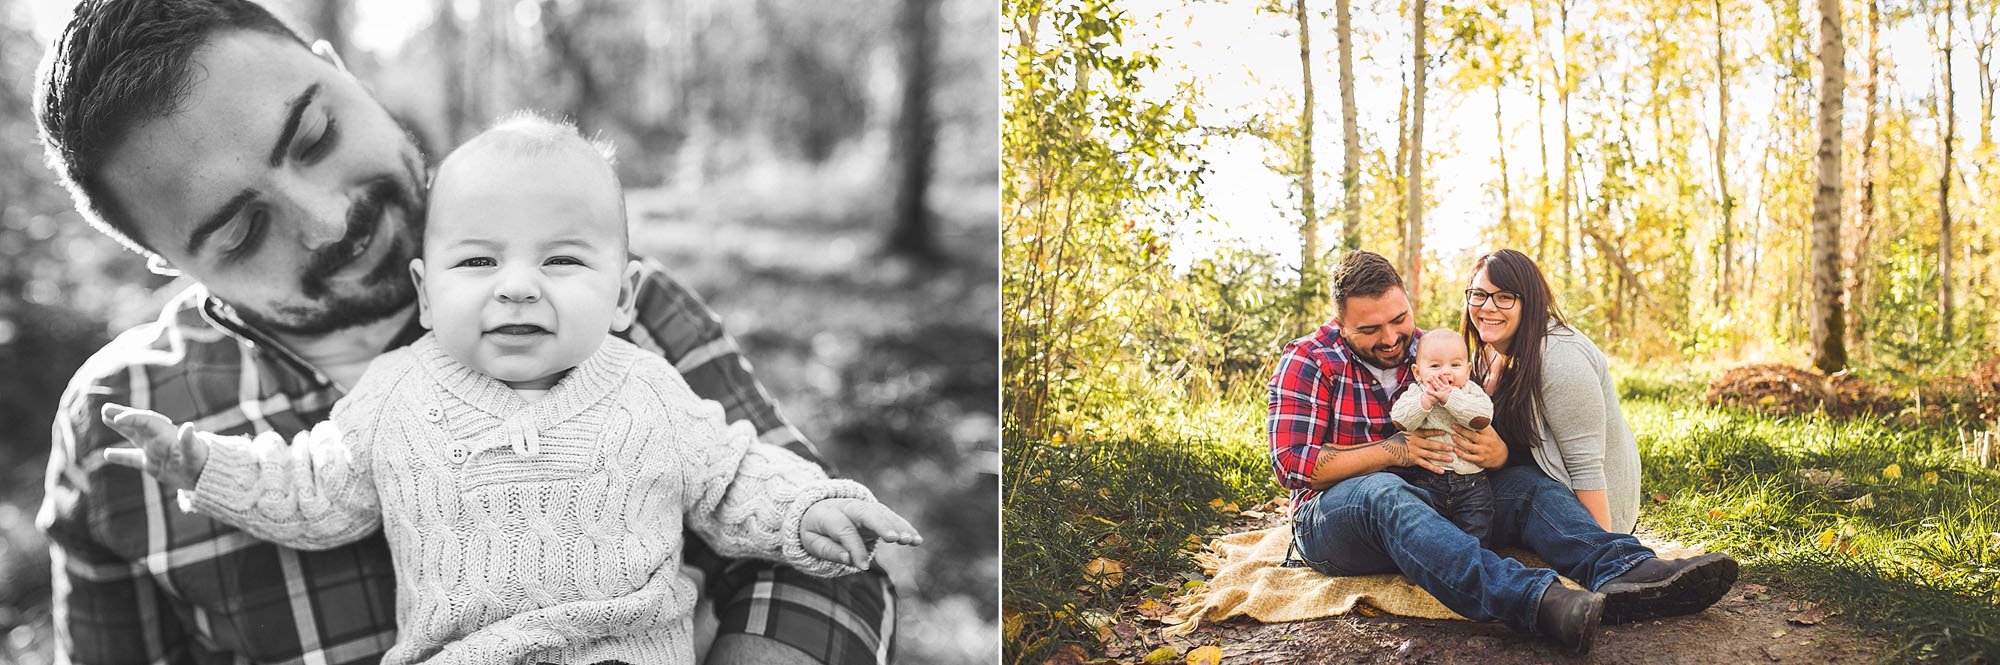 ashley vos photography seattle area lifestyle family and birth photography_0098.jpg